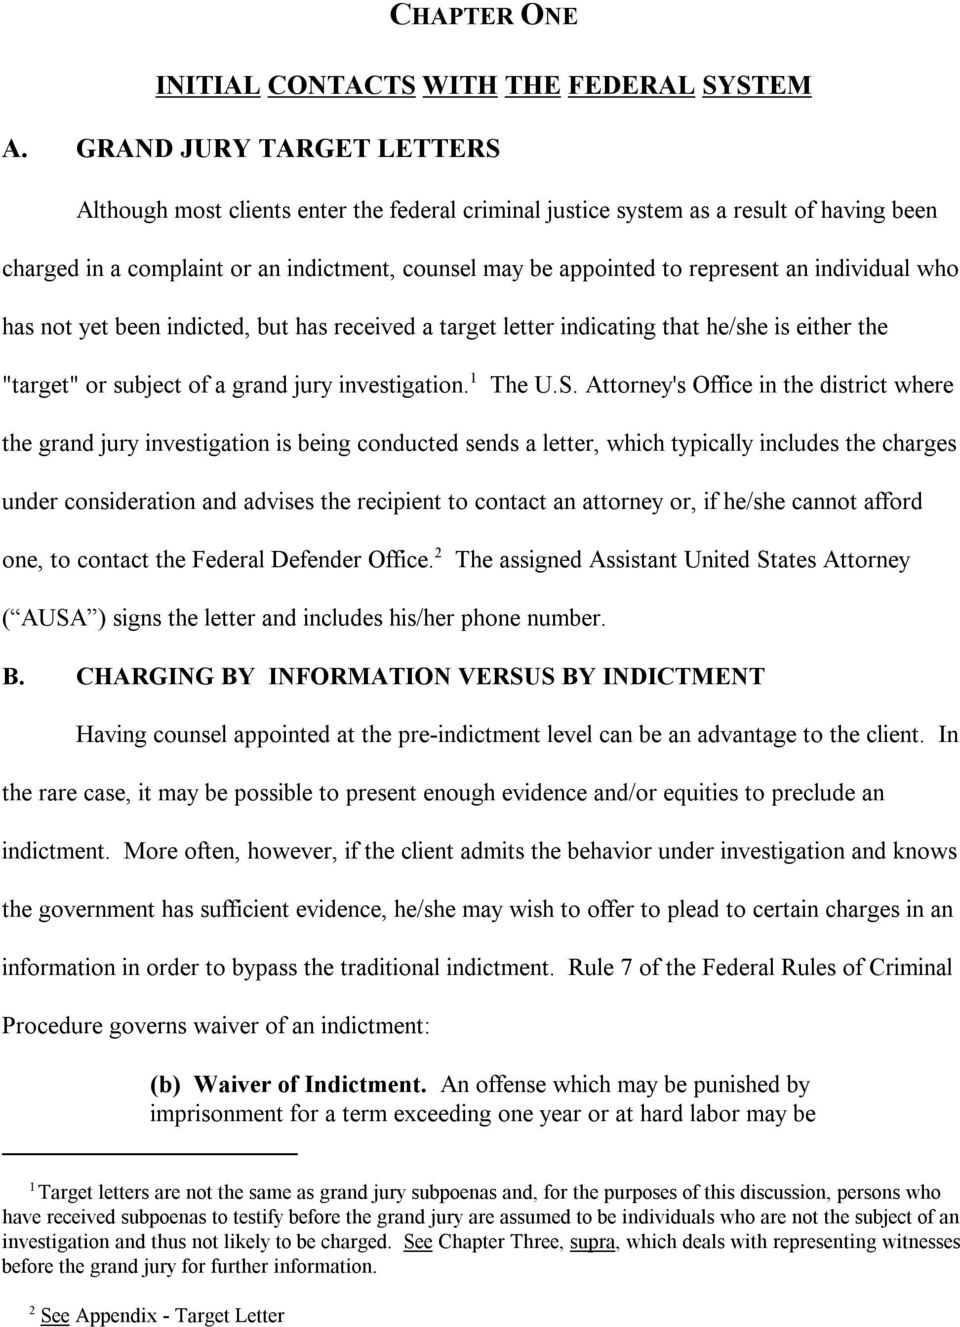 "individual who has not yet been indicted, but has received a target letter indicating that he/she is either the ""target"" or subject of a grand jury investigation. 1 The U.S."